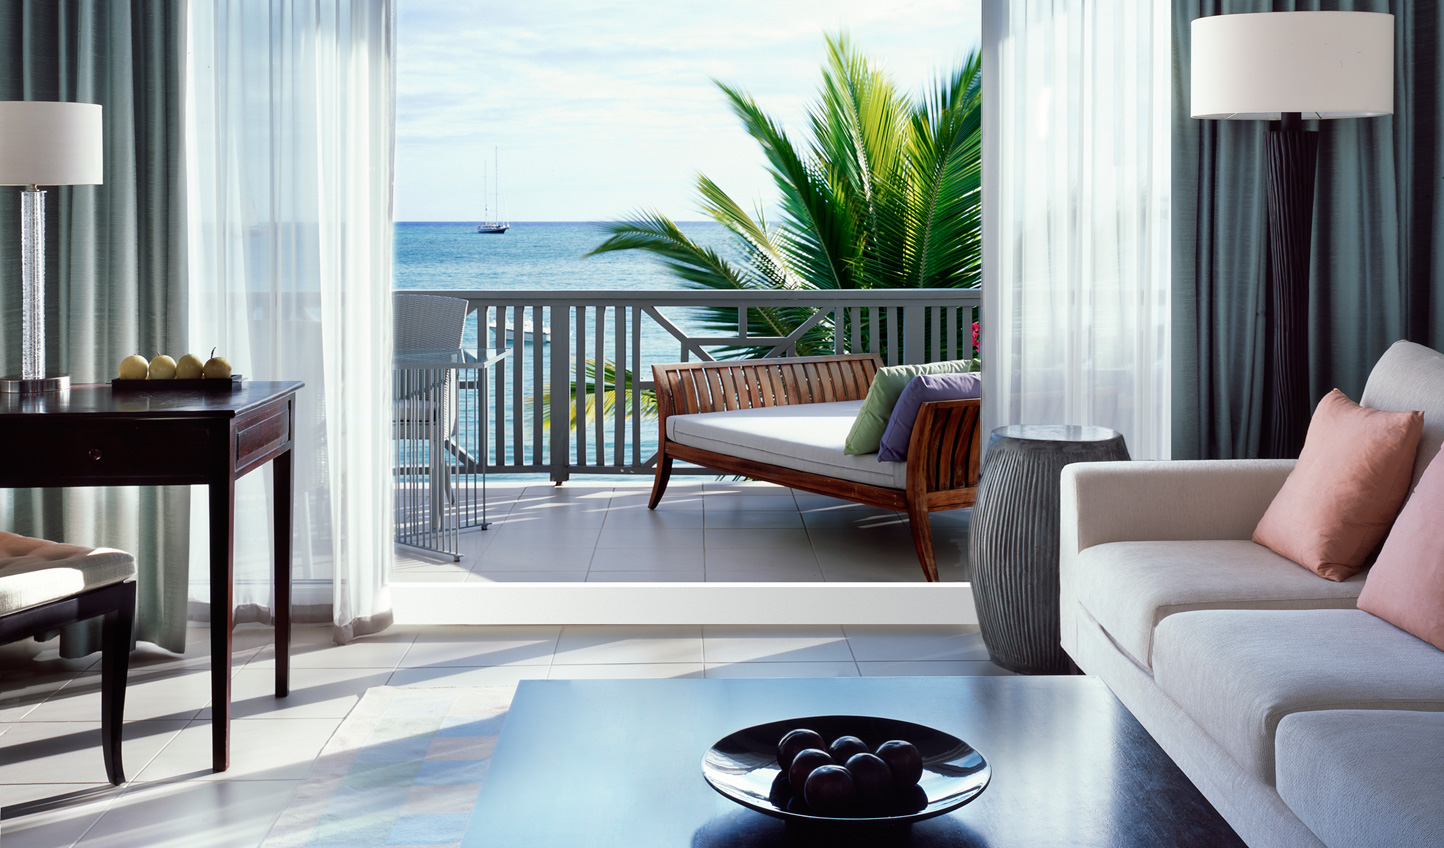 Relax out on your private balcony